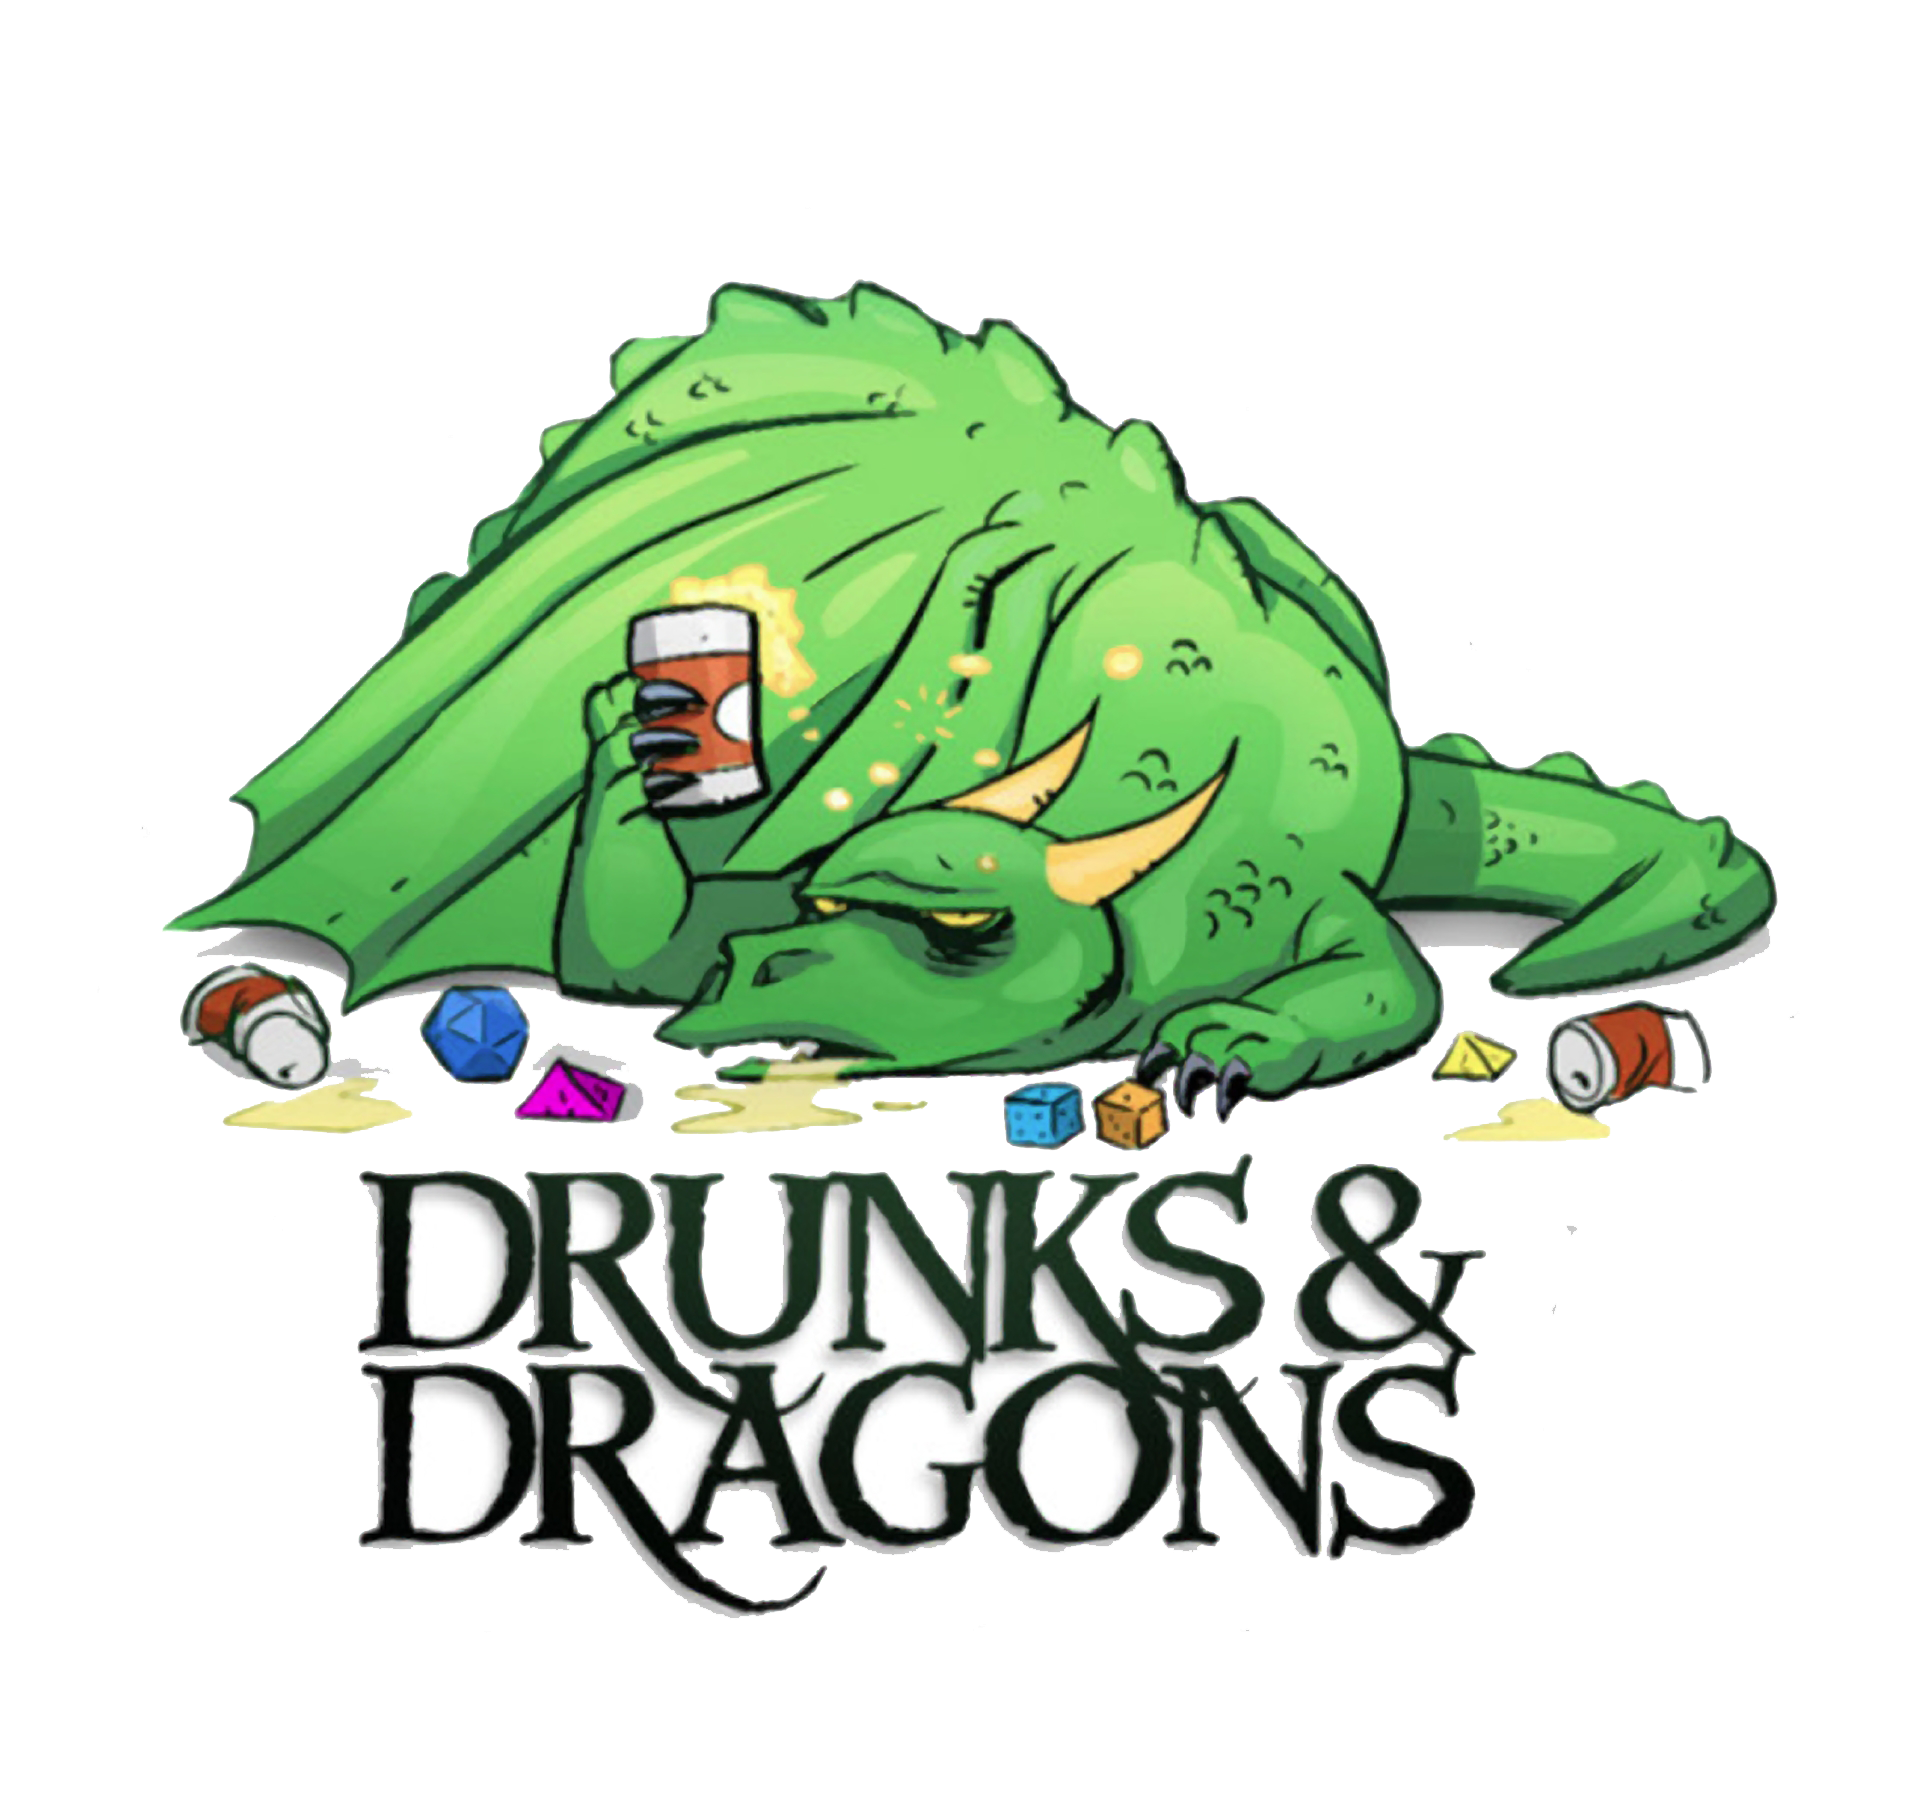 Drunks and Dragons logo with a drunken dragon.